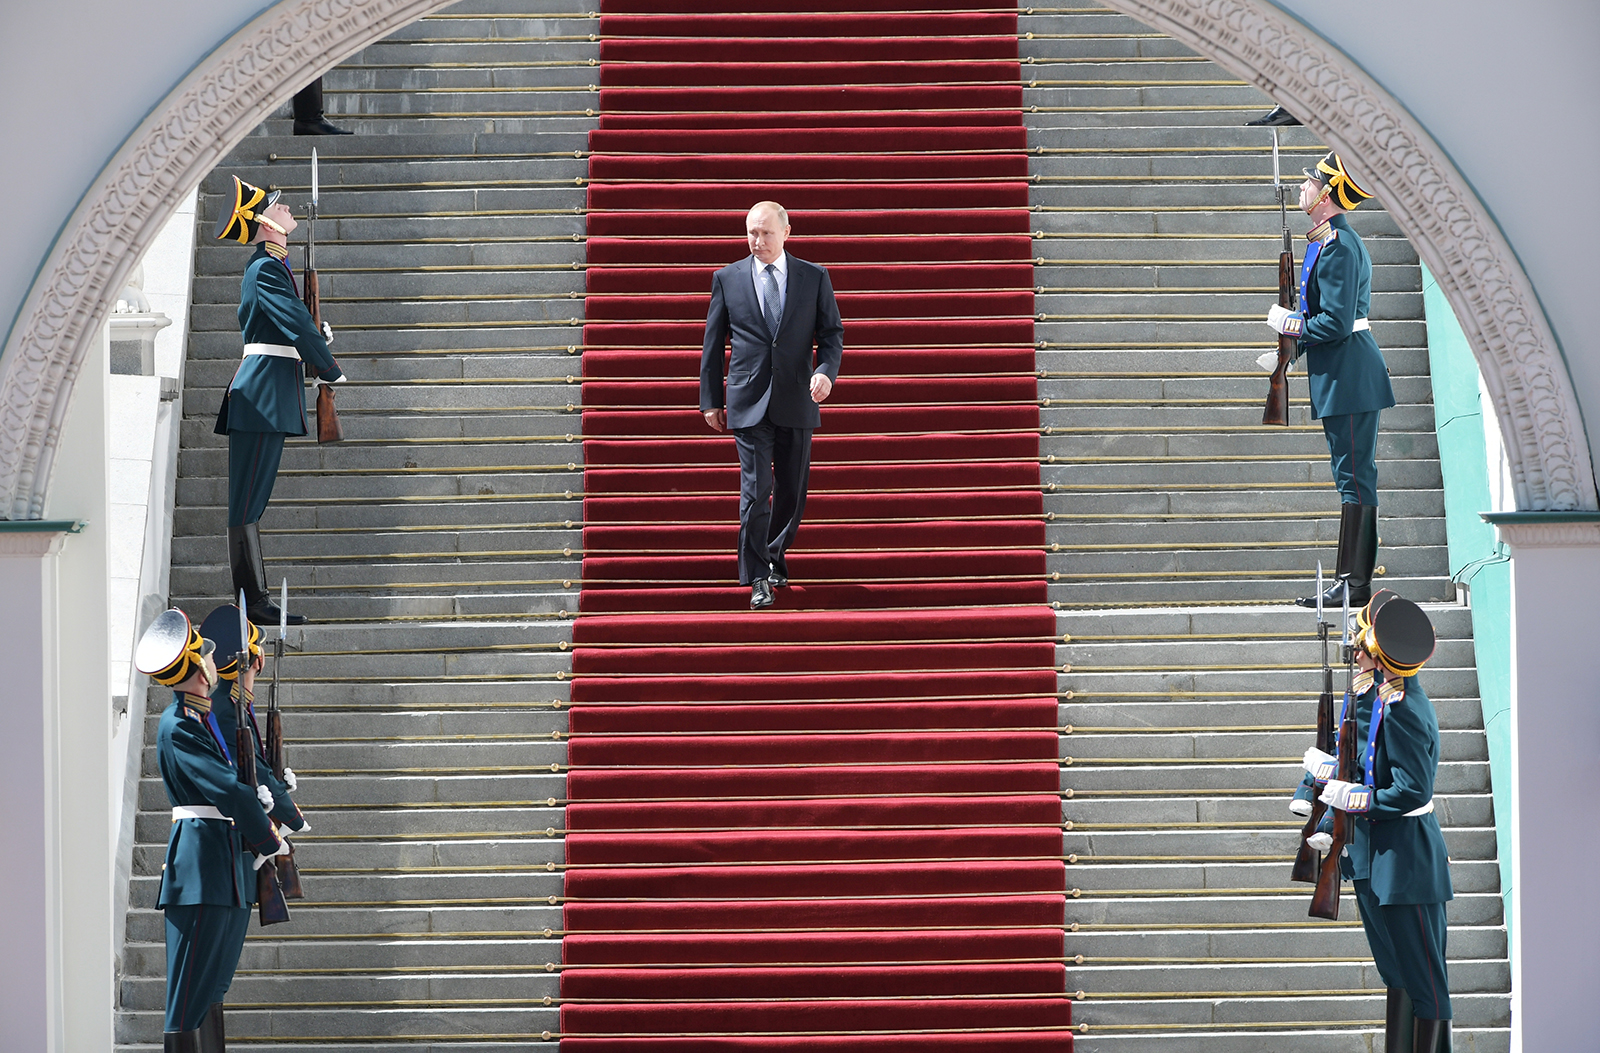 Russian President Putin walks down the stairs after an inauguration ceremony at the Kremlin in Moscow